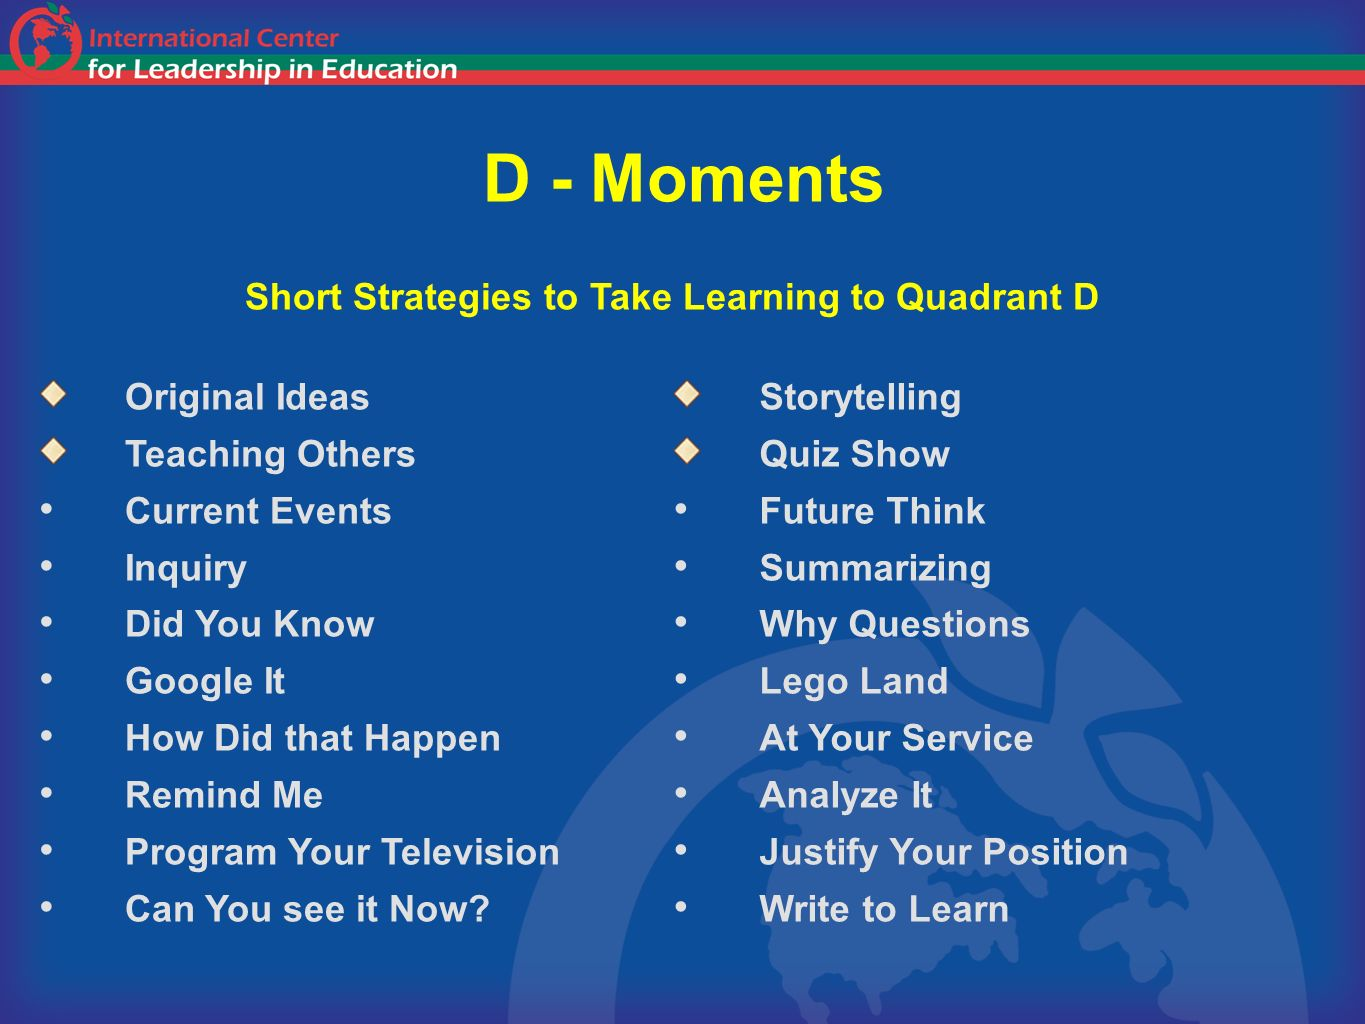 D - Moments Short Strategies to Take Learning to Quadrant D